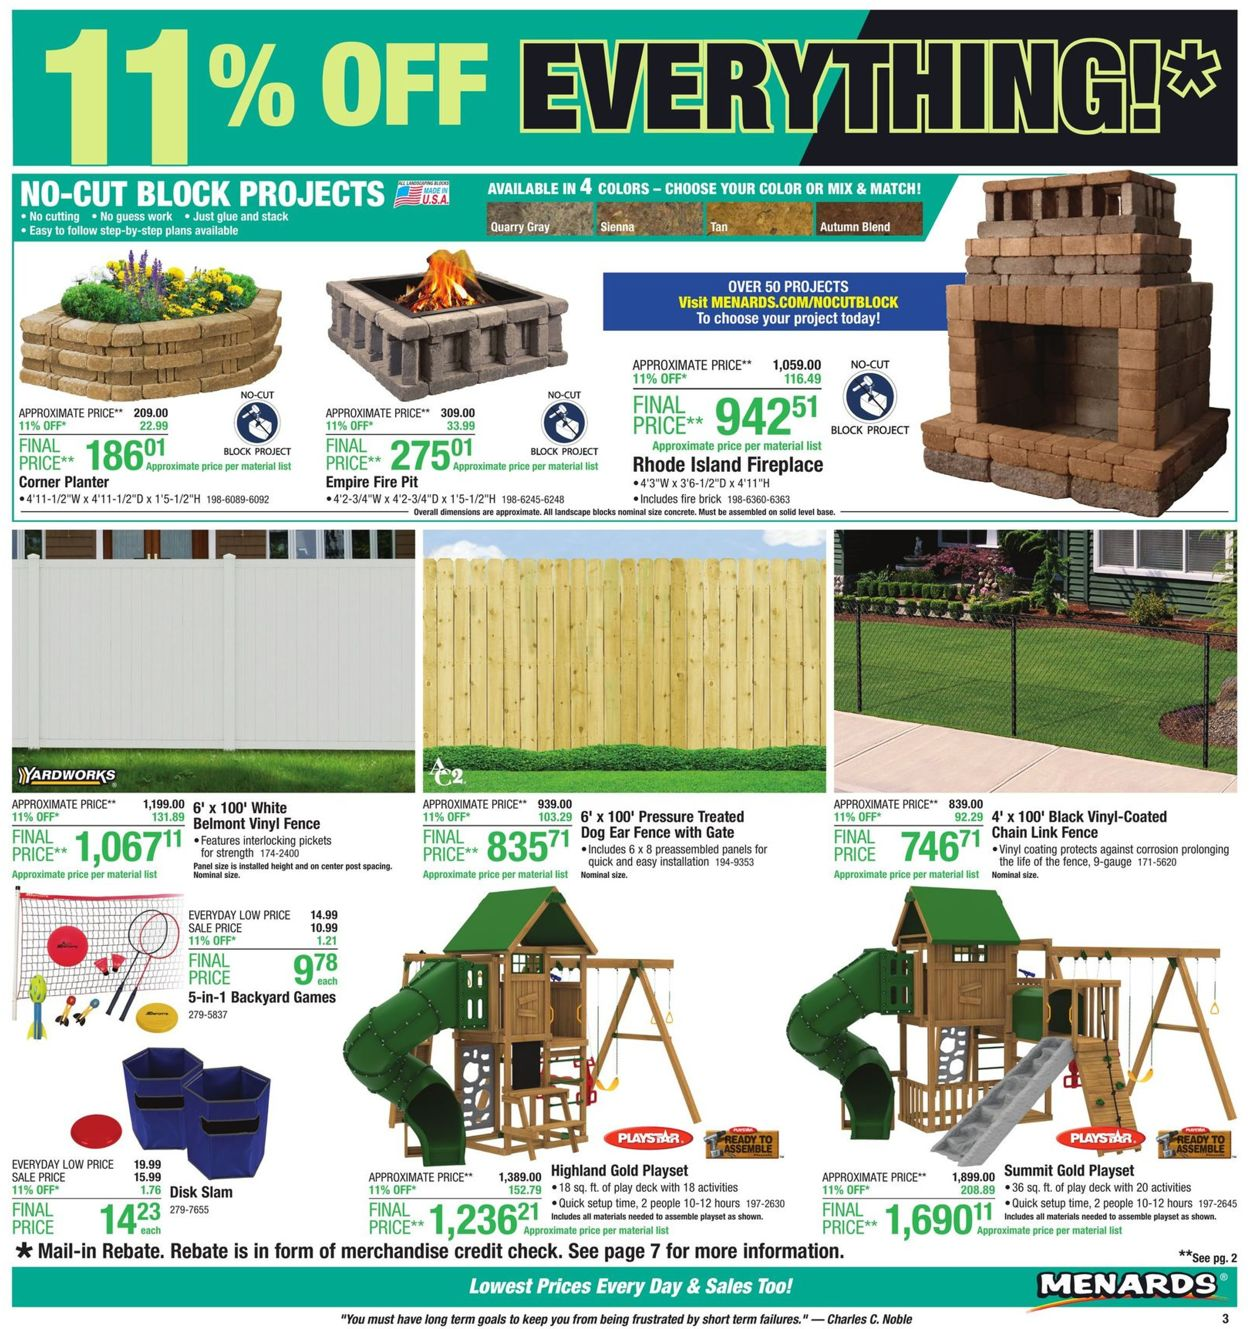 Menards Current weekly ad 05/12 - 05/18/2019 [3] - frequent ... on pottery barn house plans, belk house plans, carter lumber house plans, metal shop house plans, do it best house plans, hallmark house plans, walk out basement house plans, loft house plans, ikea house plans, small 3 bedrooms house plans, simple 4 bedroom house plans, ranch house plans, ebay house plans, secret passage house plans, brady house plans, marriott house plans, house floor plans, amazon house plans, single story house plans, lowe's house plans,